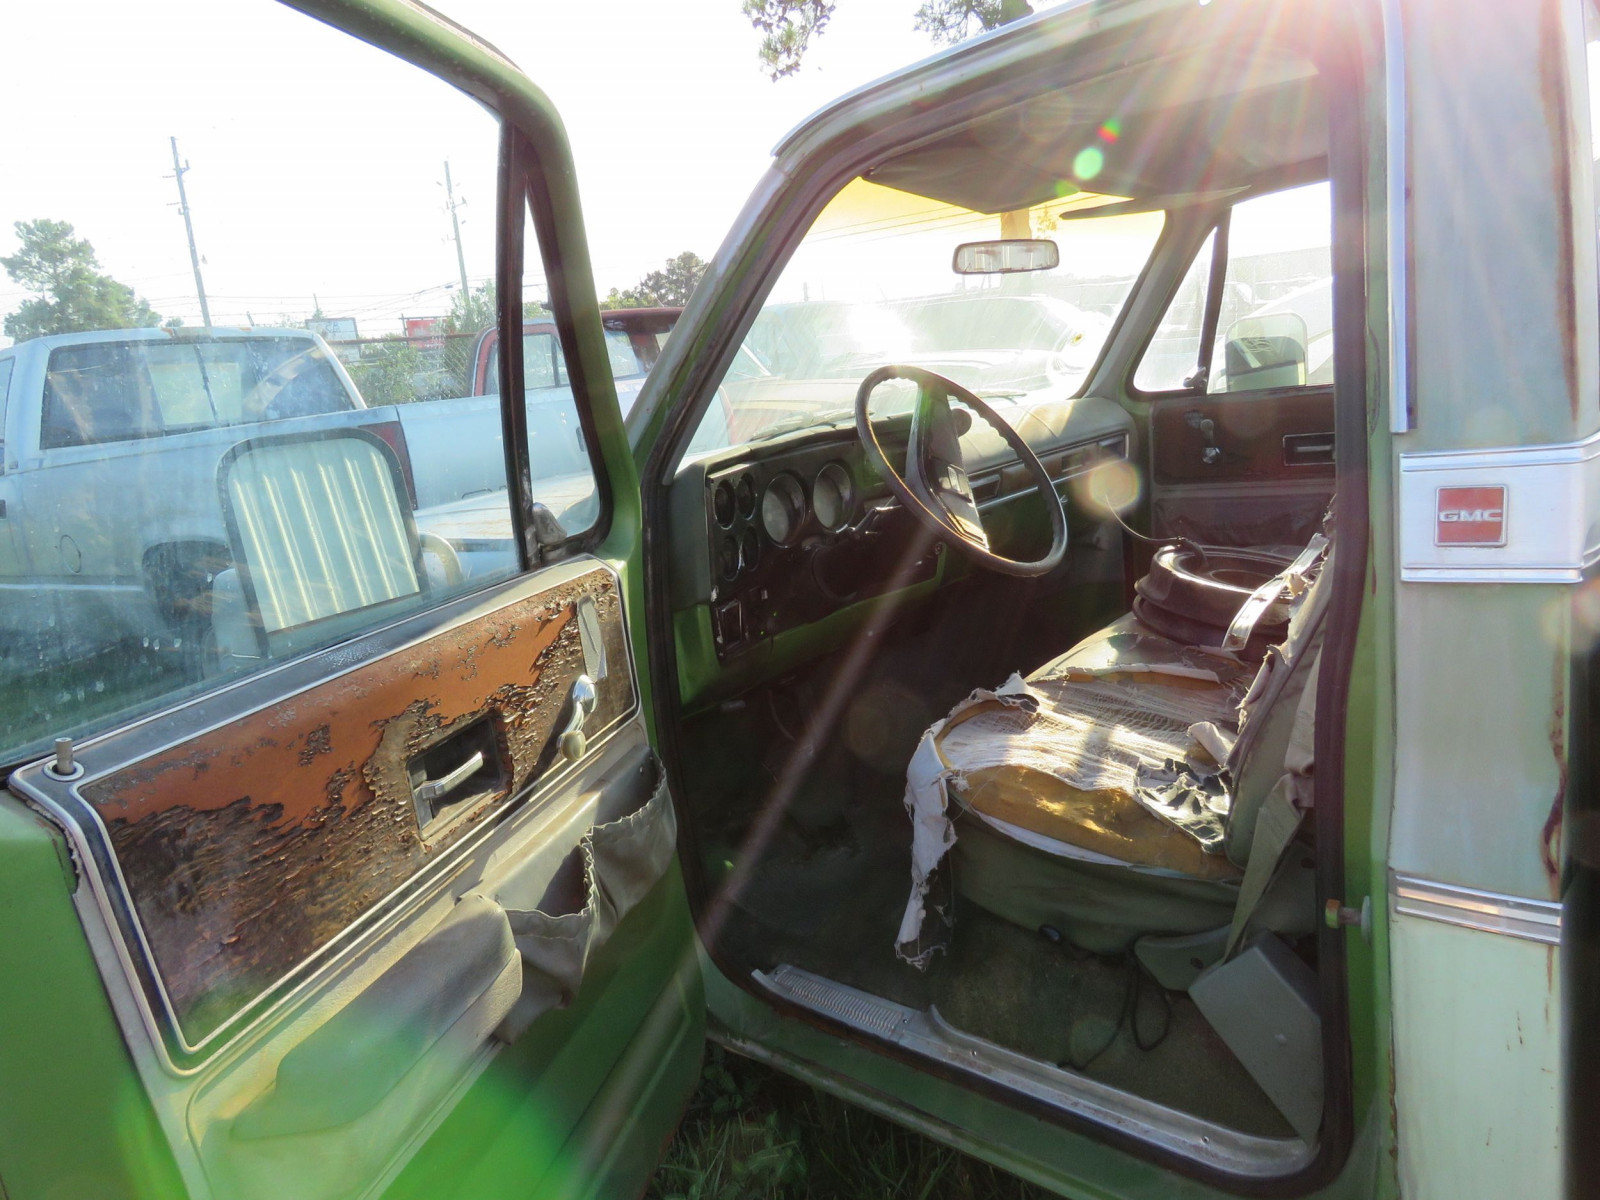 1976 GMC High Sierra 1/2 ton Pickup - Image 5